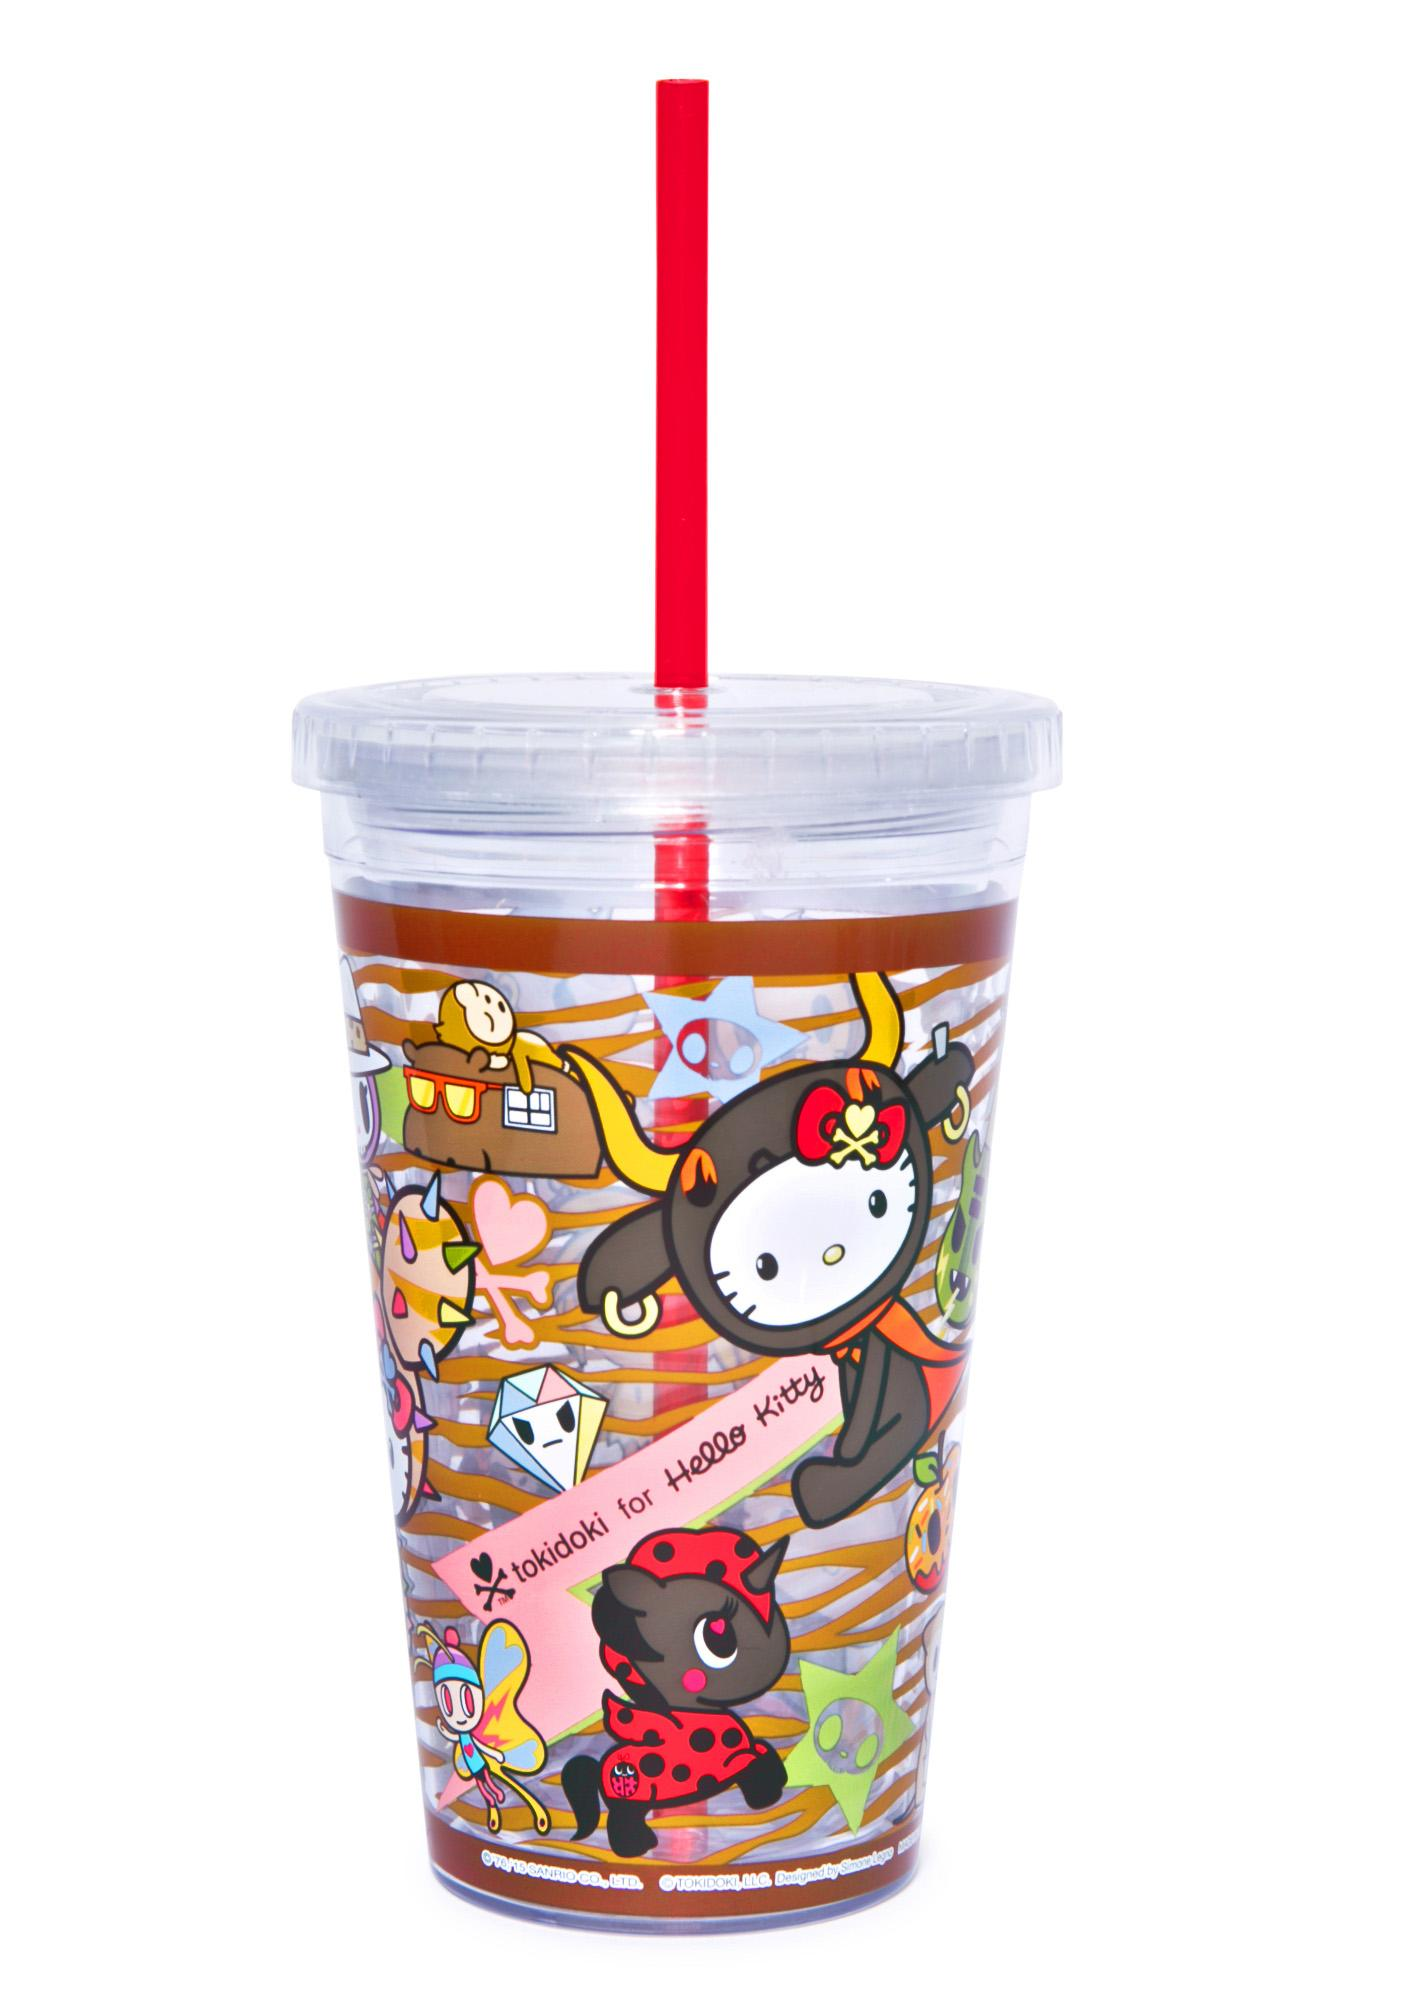 Sanrio Tokidoki X Hello Kitty Summer Safari Cup